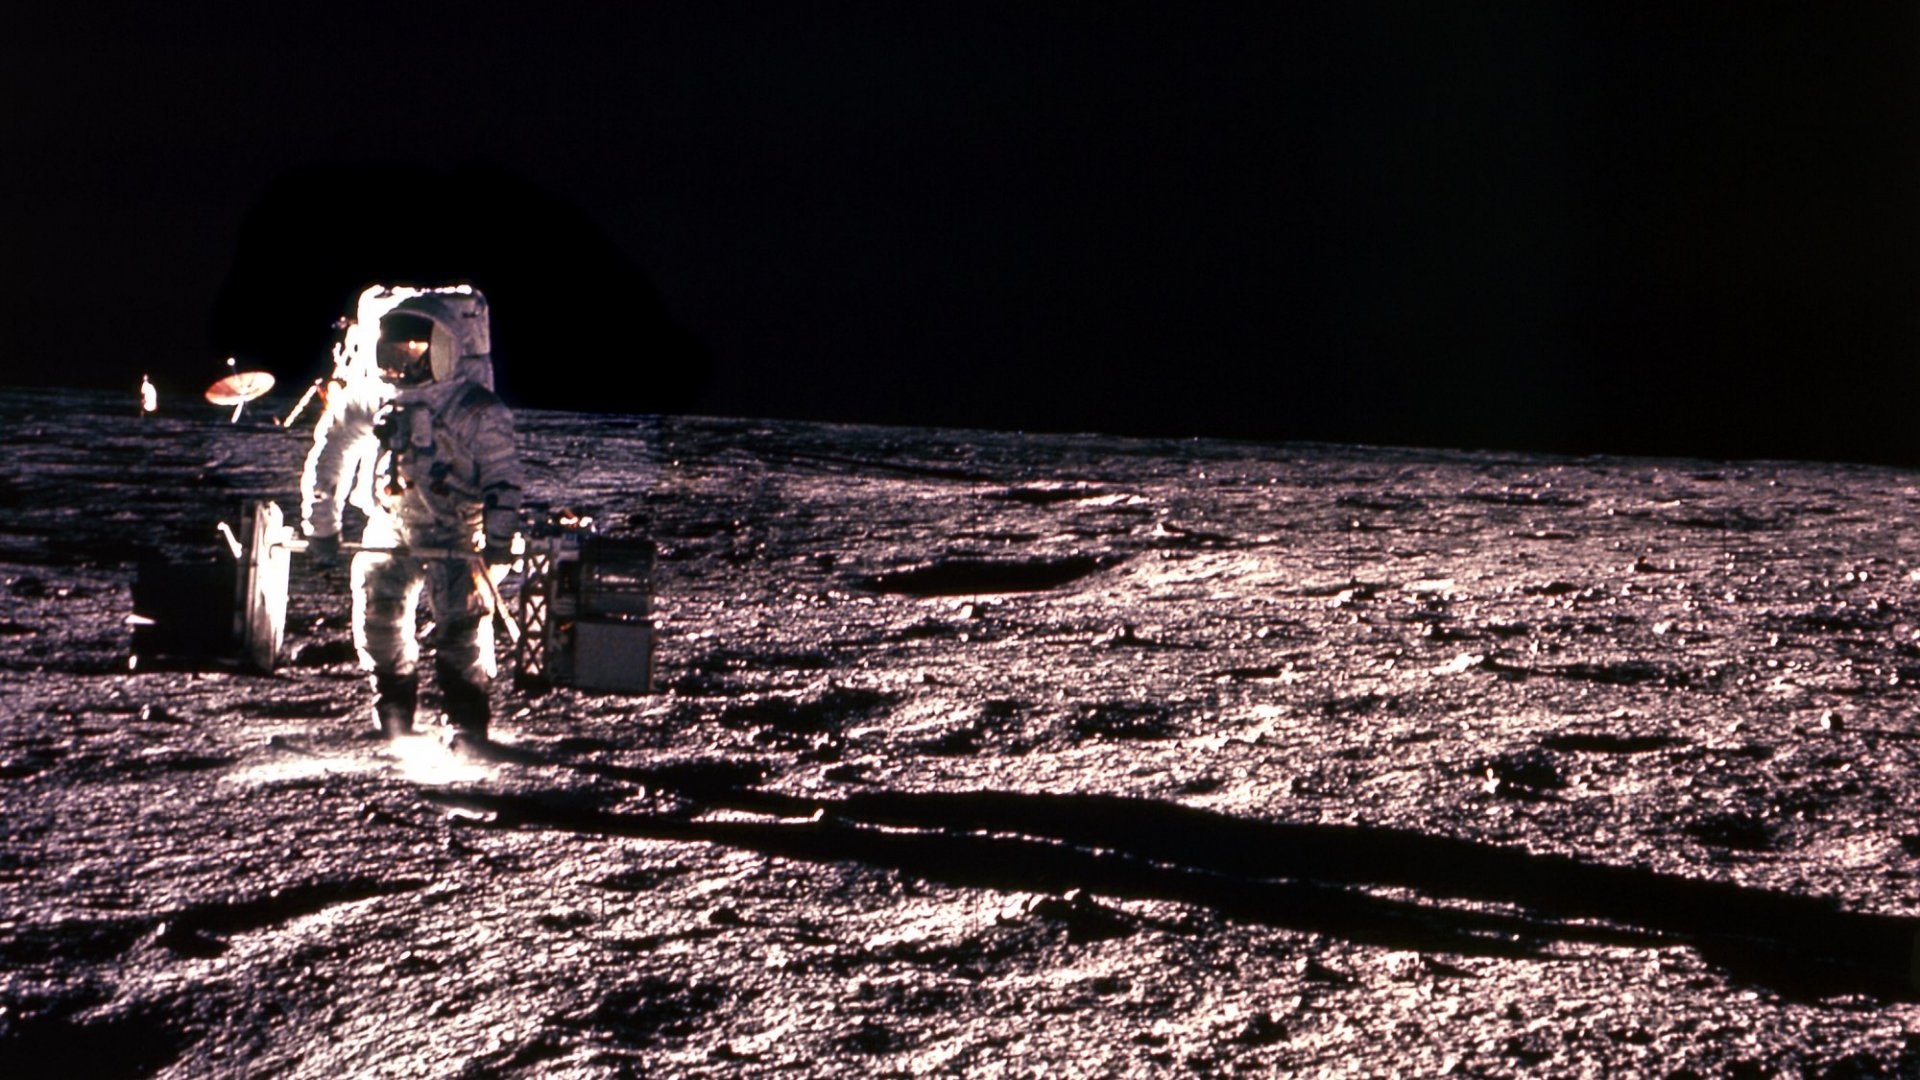 Private companies like Bigelow Aerospace and Moon Express are racing to get to the moon's surface and set up shop.